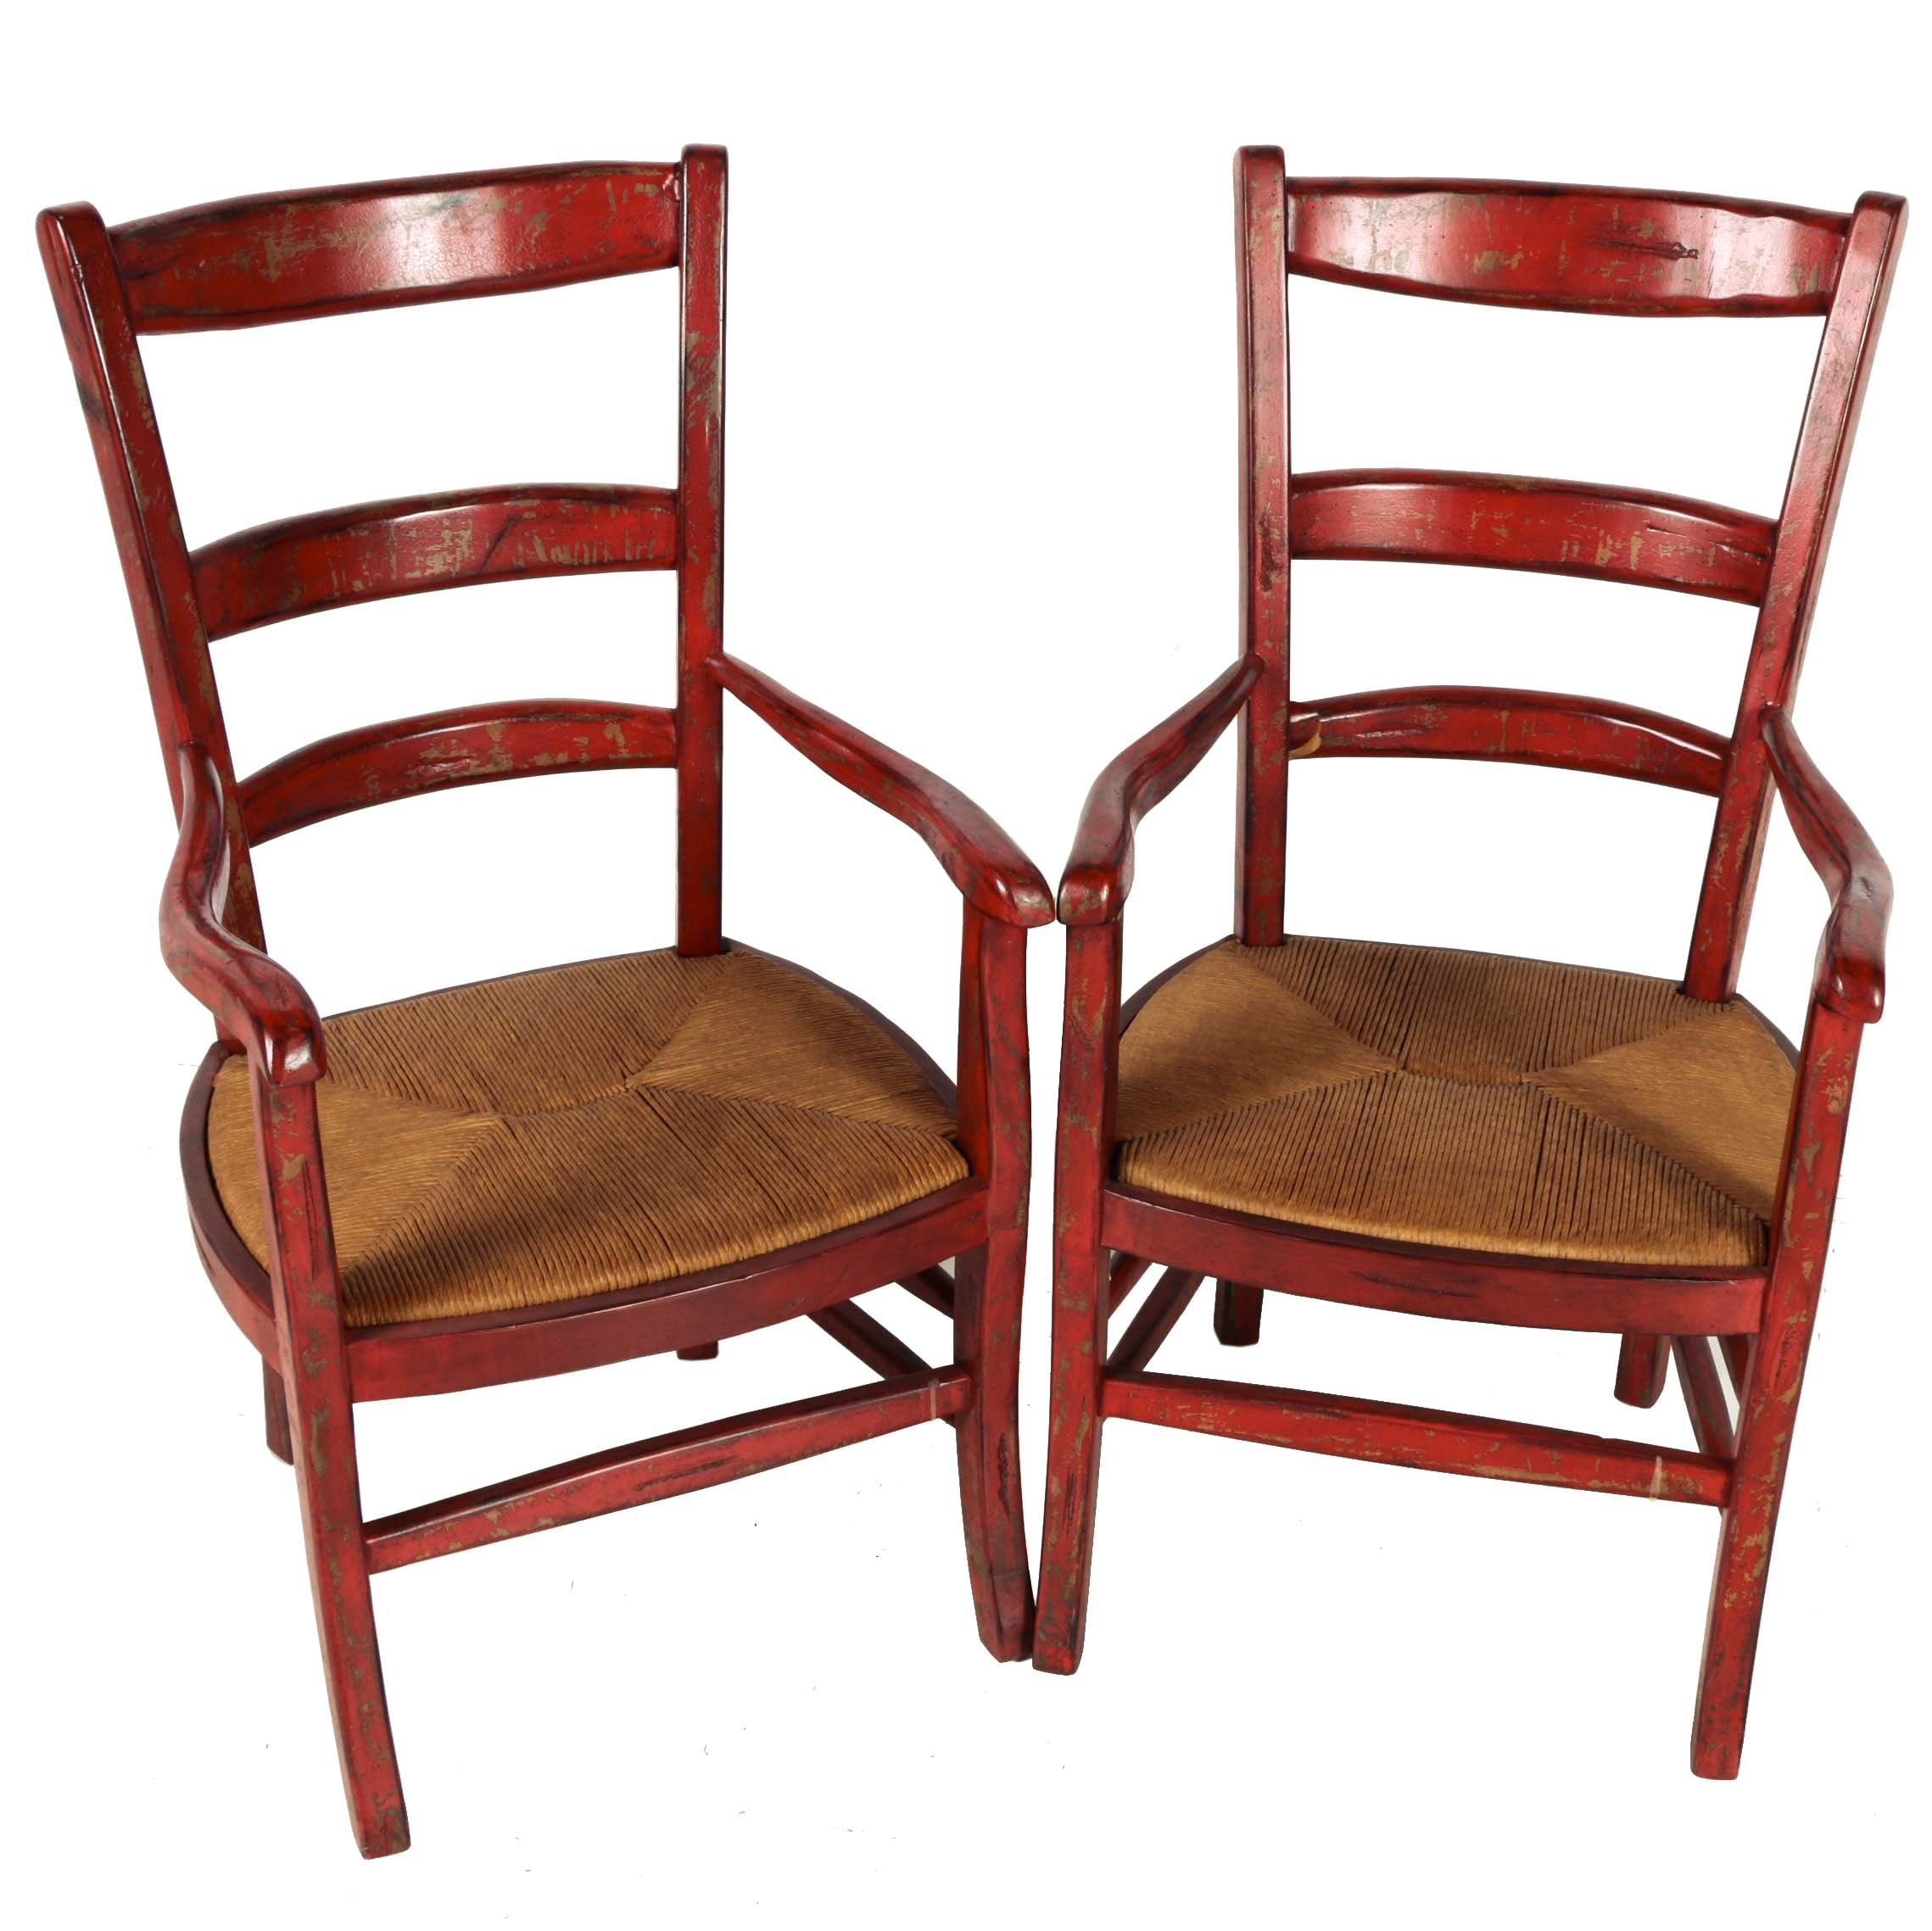 Red Ladderback Chairs with Rush Woven Seats